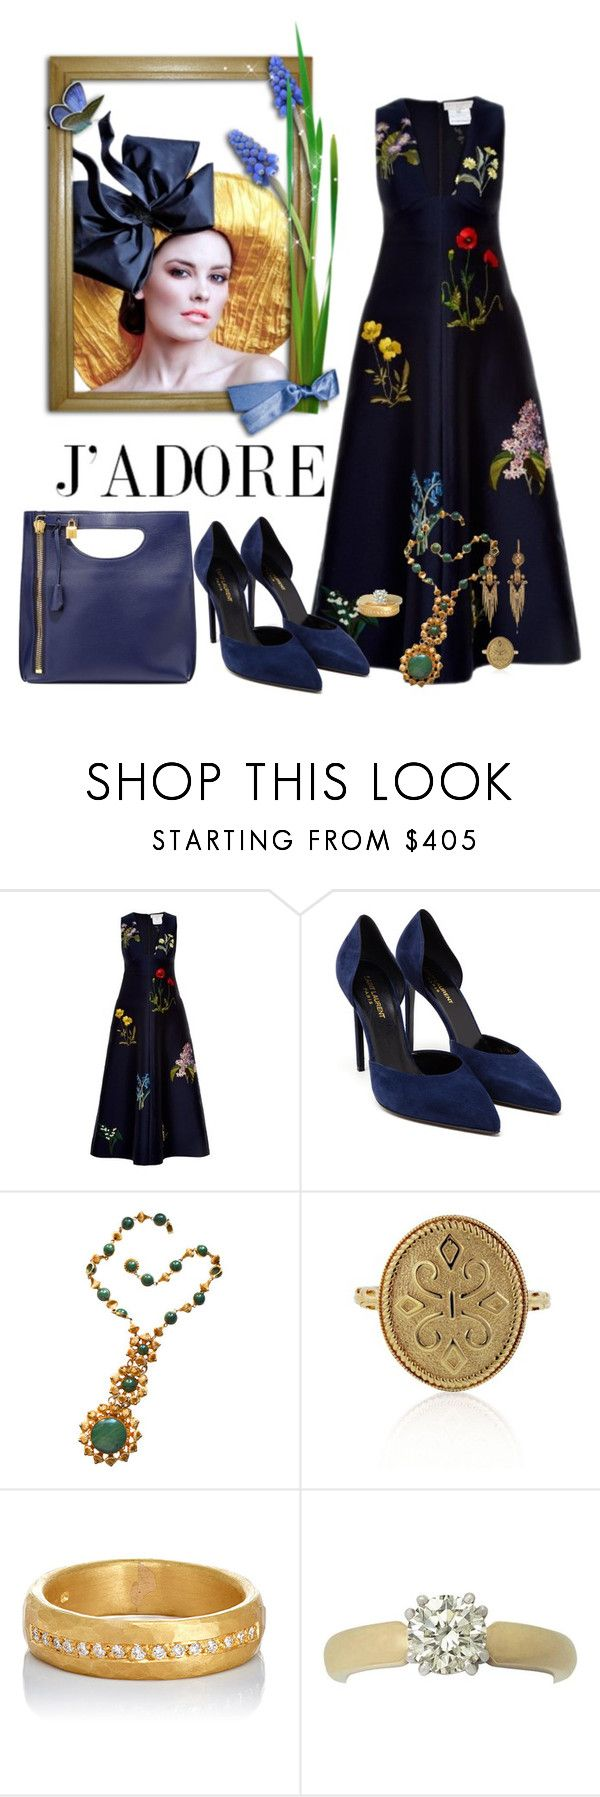 fin by angiemine213 liked on polyvore featuring stella mccartney yves saint laurent